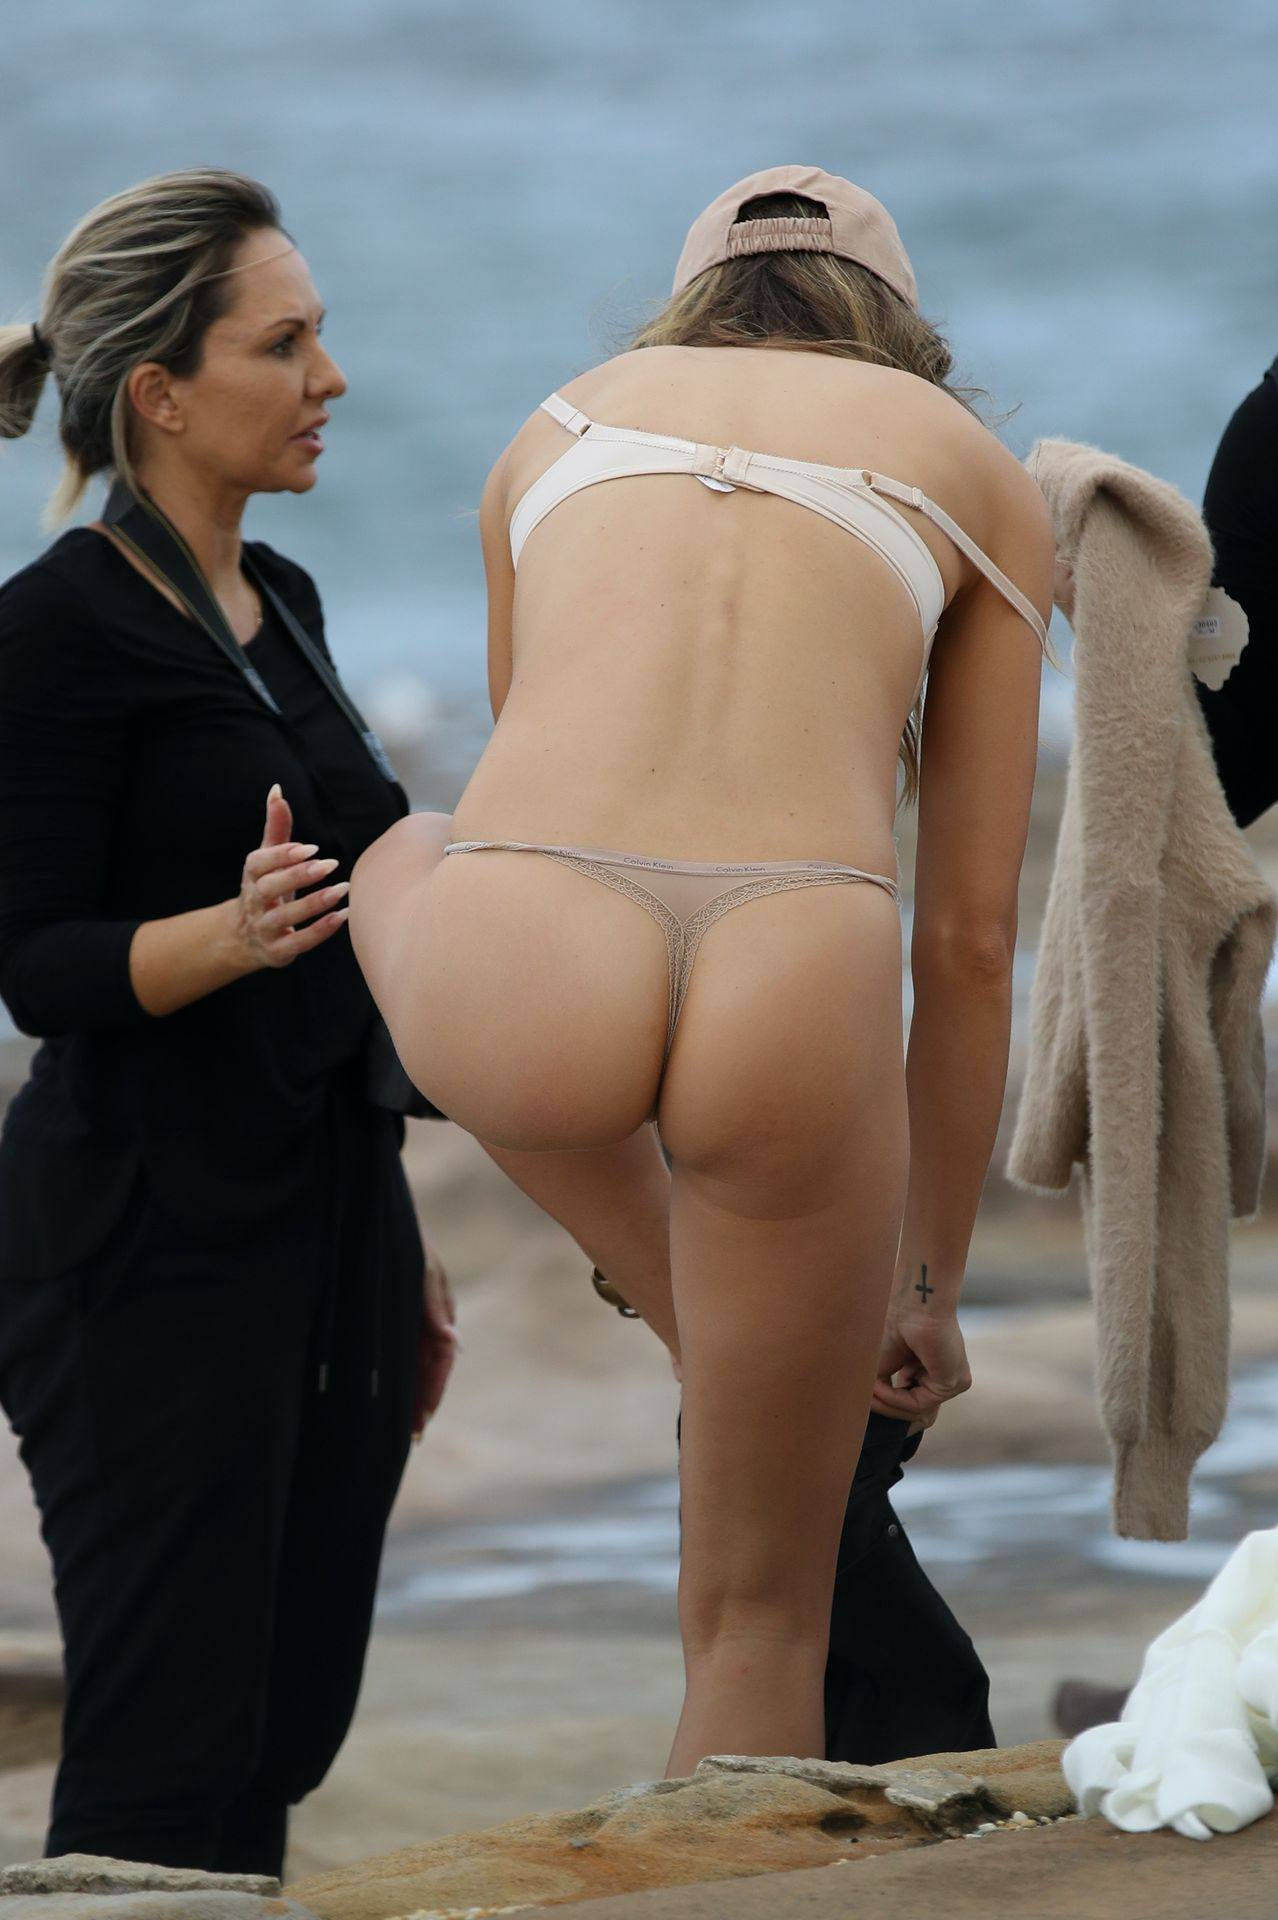 Stephanie Claire Smith – Sexy Big Camel Toe In Panties At Photoshoot In Sydney 0026